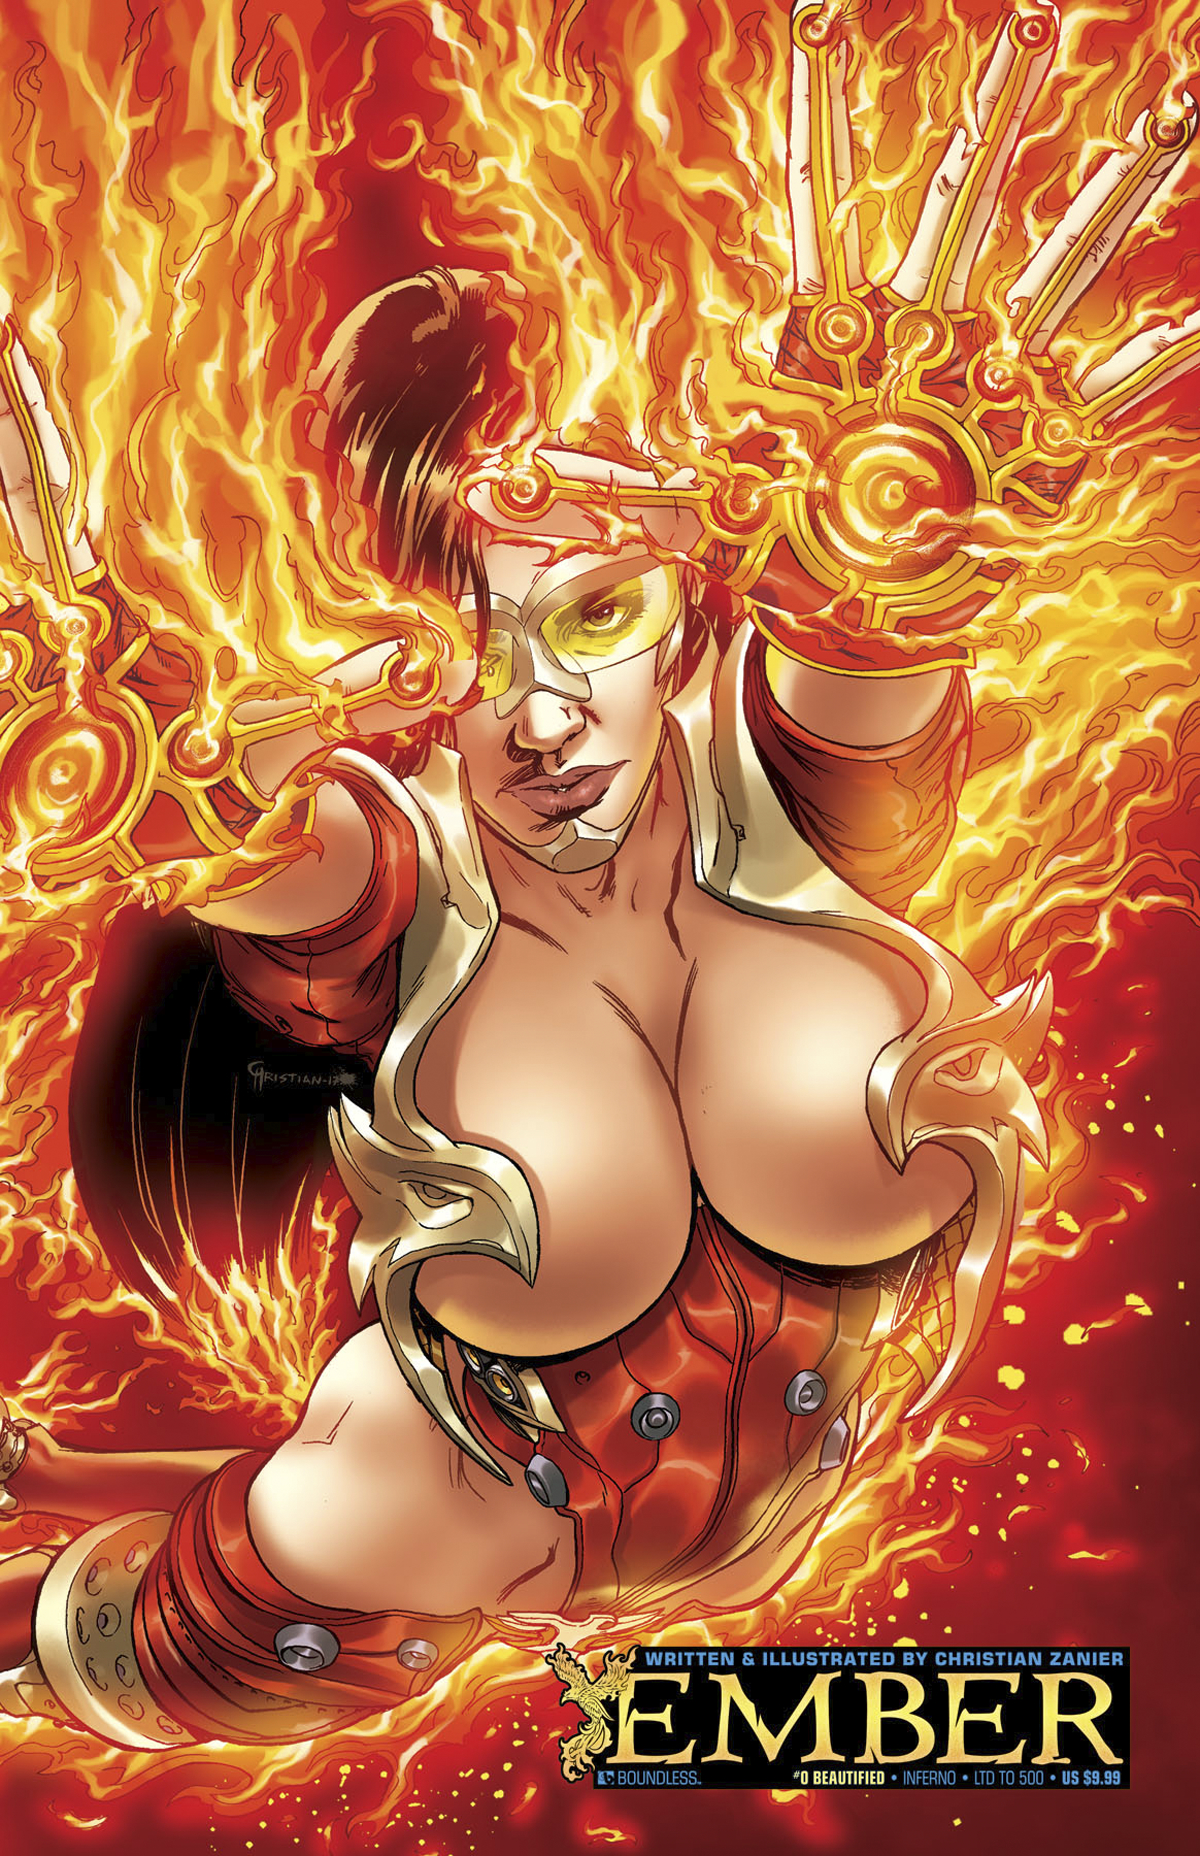 EMBER #0 BEAUTIFIED INFERNO